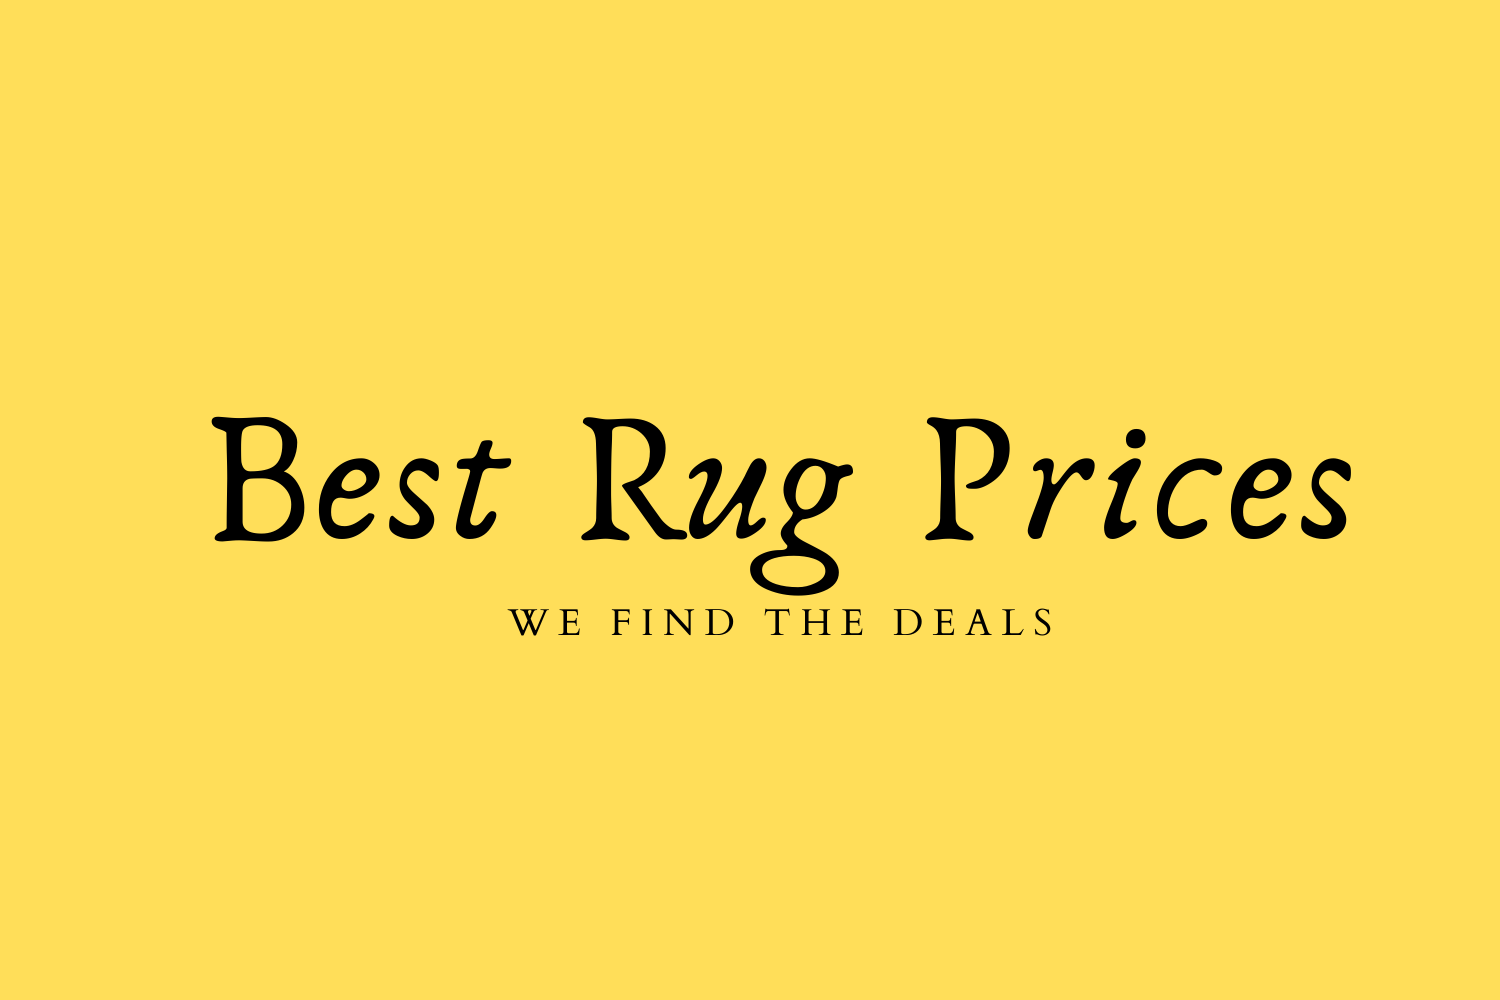 best prices on oriental rugs